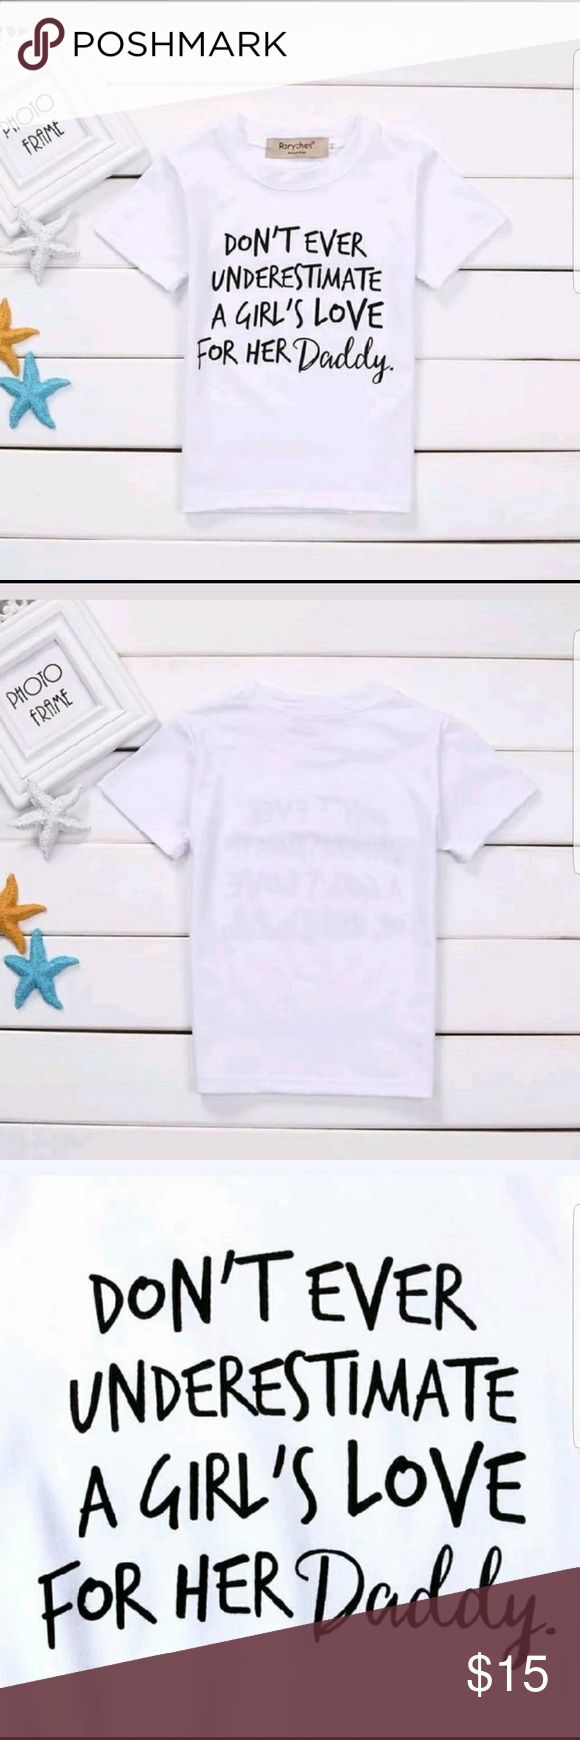 Toddler Girls size 4-5 Daddy's little girl Tee WHITE AND BLACK Short sleeve tshirt  SIZES: 4t-5t  Brand new without tags-boutique  TRACKING INFORMATION PROVIDED FOR ALL ORDERS  #daddyslittlegirl #daddy #girls #toddlers Shirts & Tops Tees - Short Sleeve